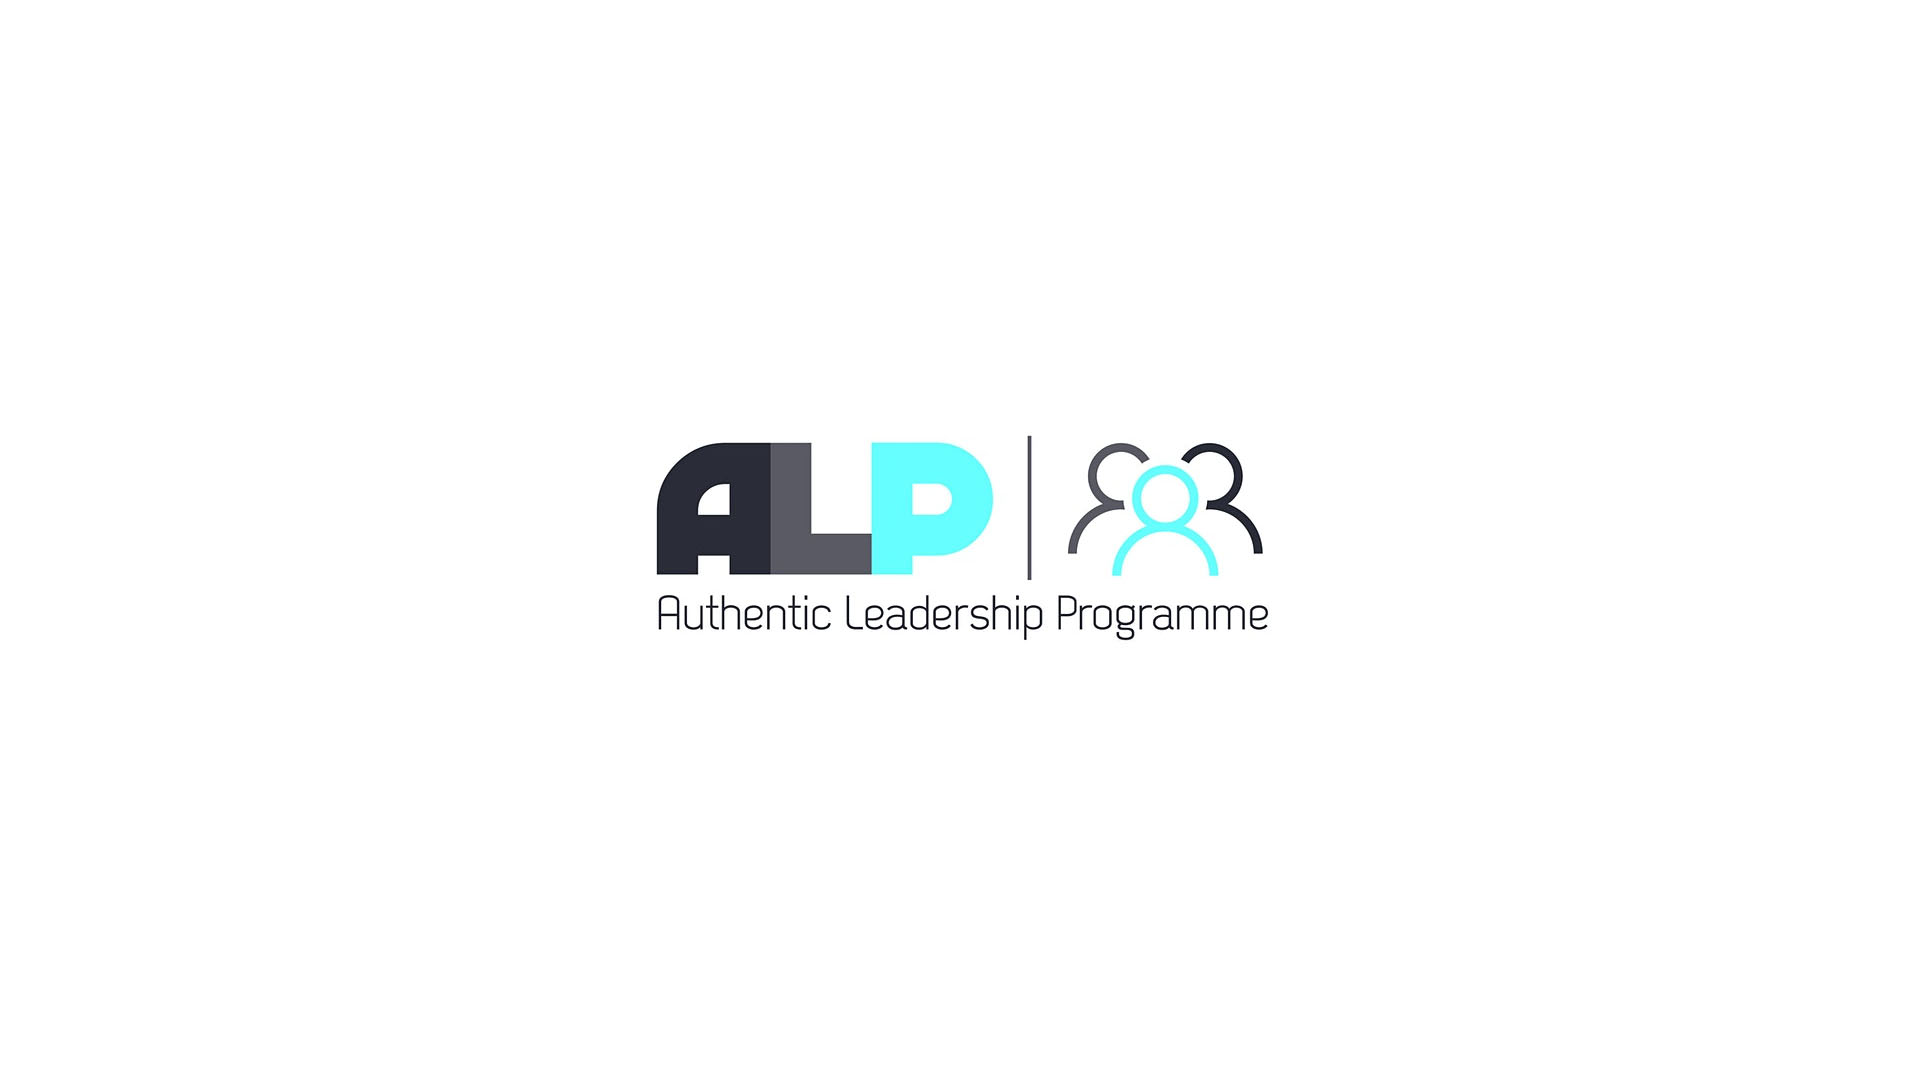 PDP: announce new Authentic Leadership Programme dates